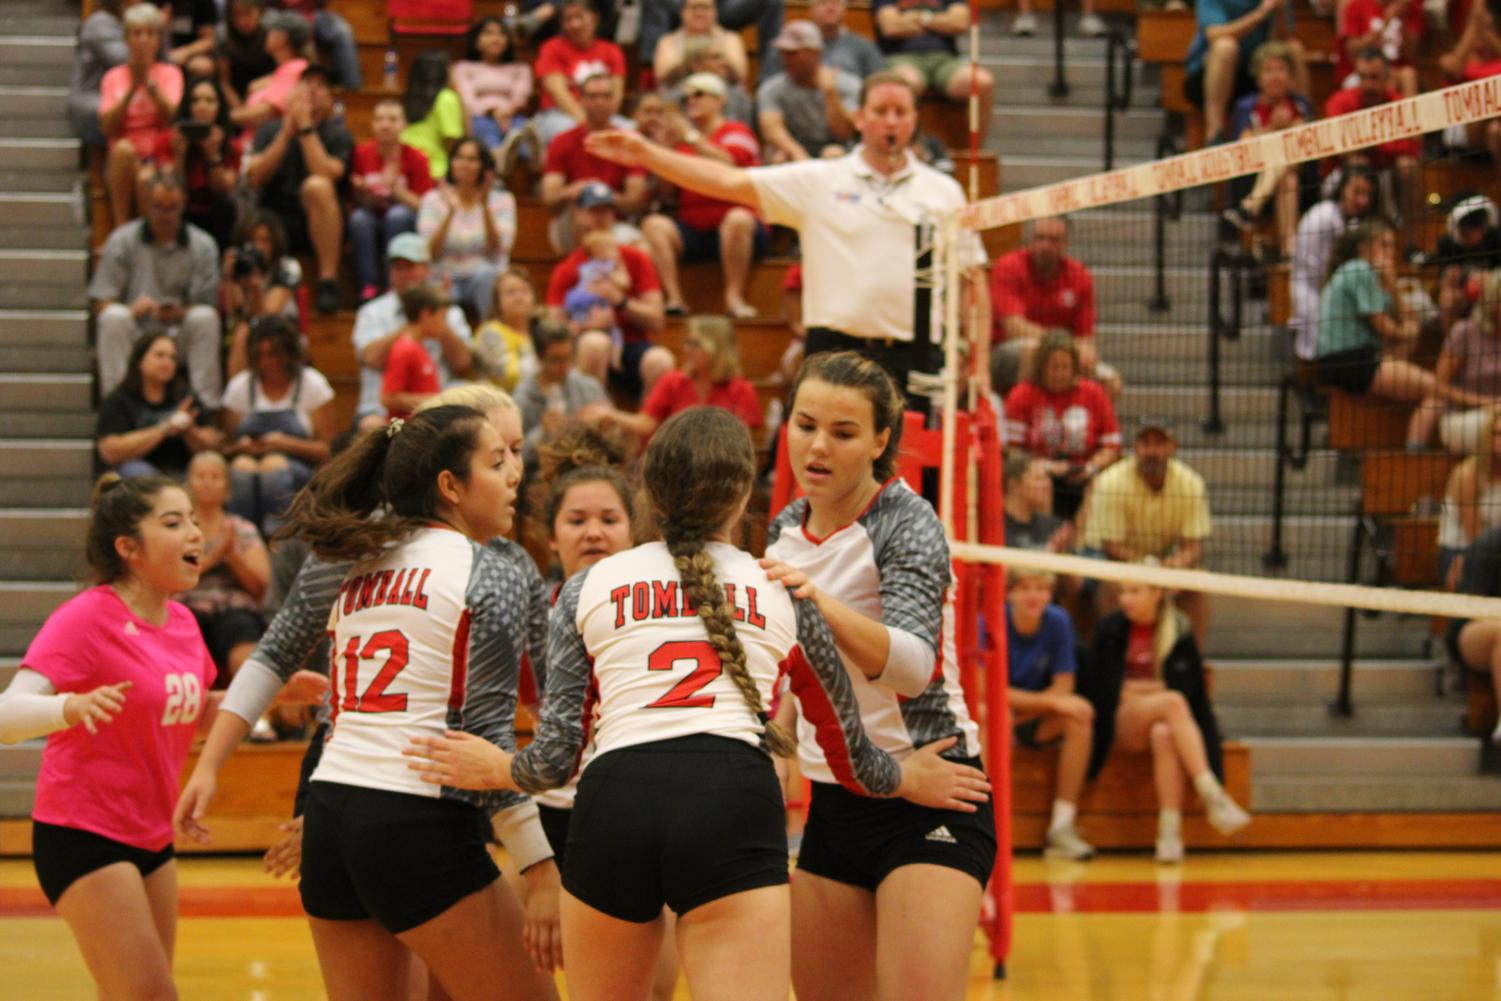 Volleyball team during a game after scoring a point.